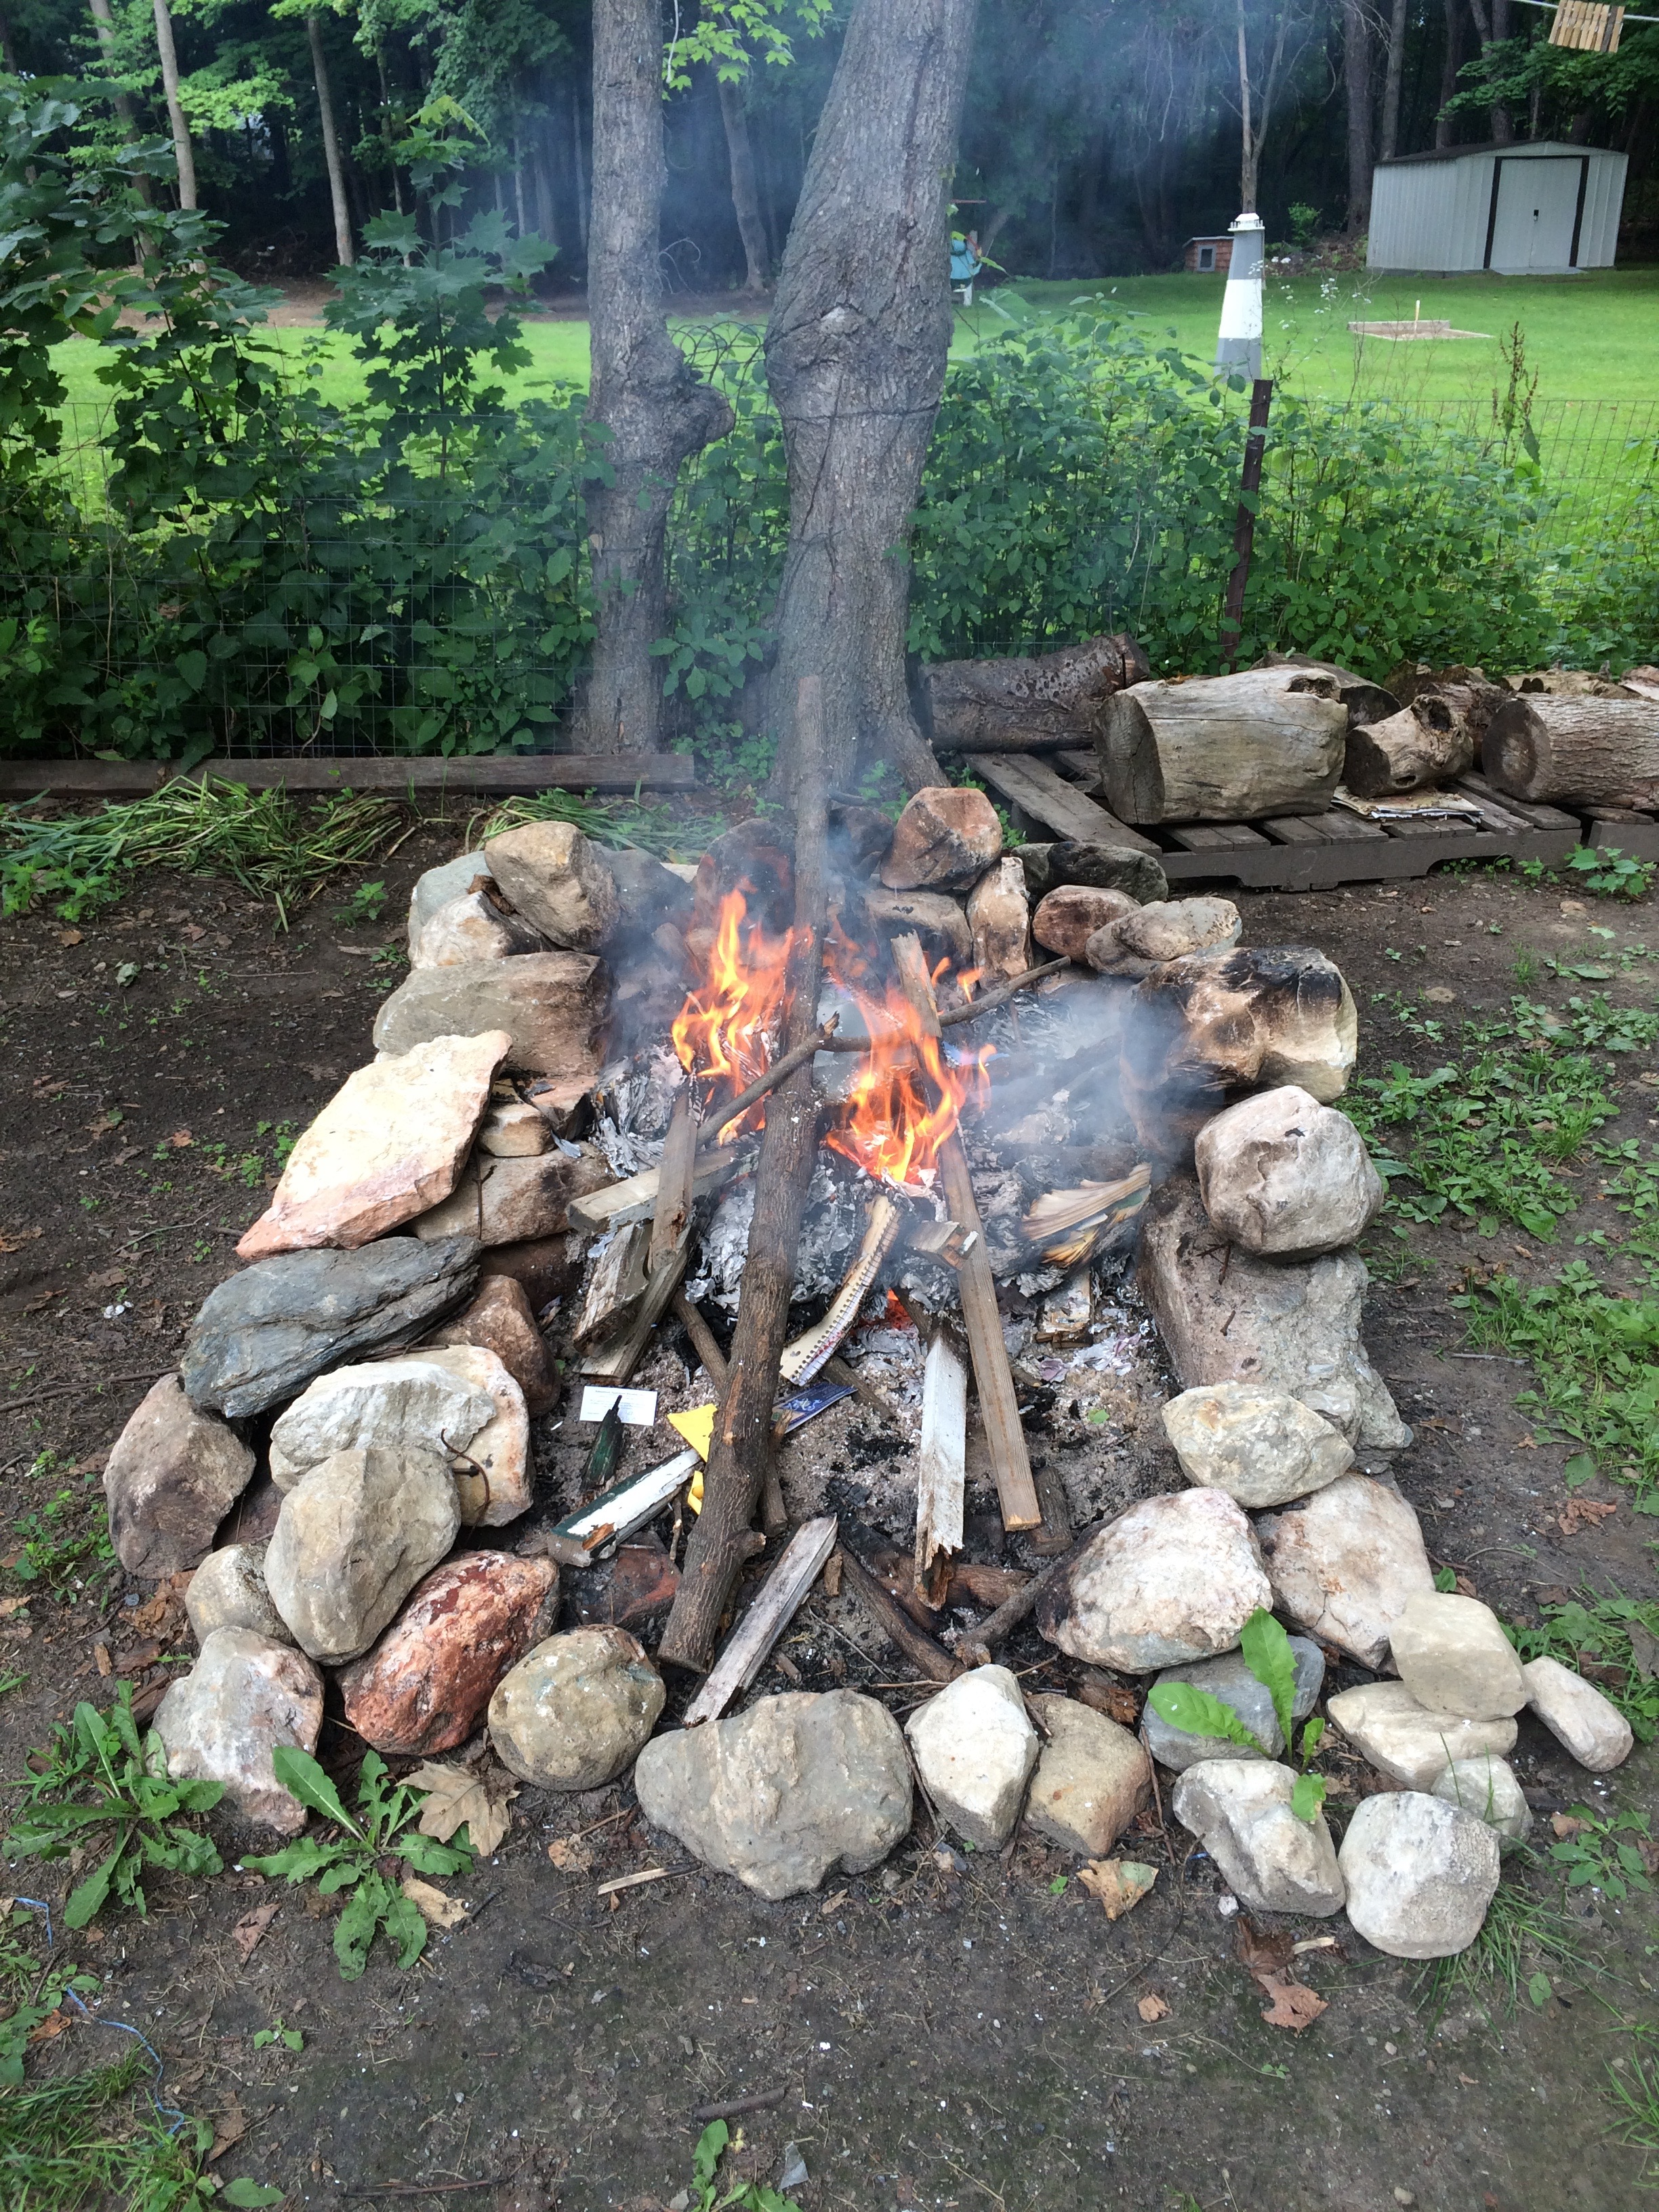 outside. a handmade stone fire pit with a fire burning. white smoke plumes up from the fire, on which are piled old notebooks. in the background, greenery and two tree trunks